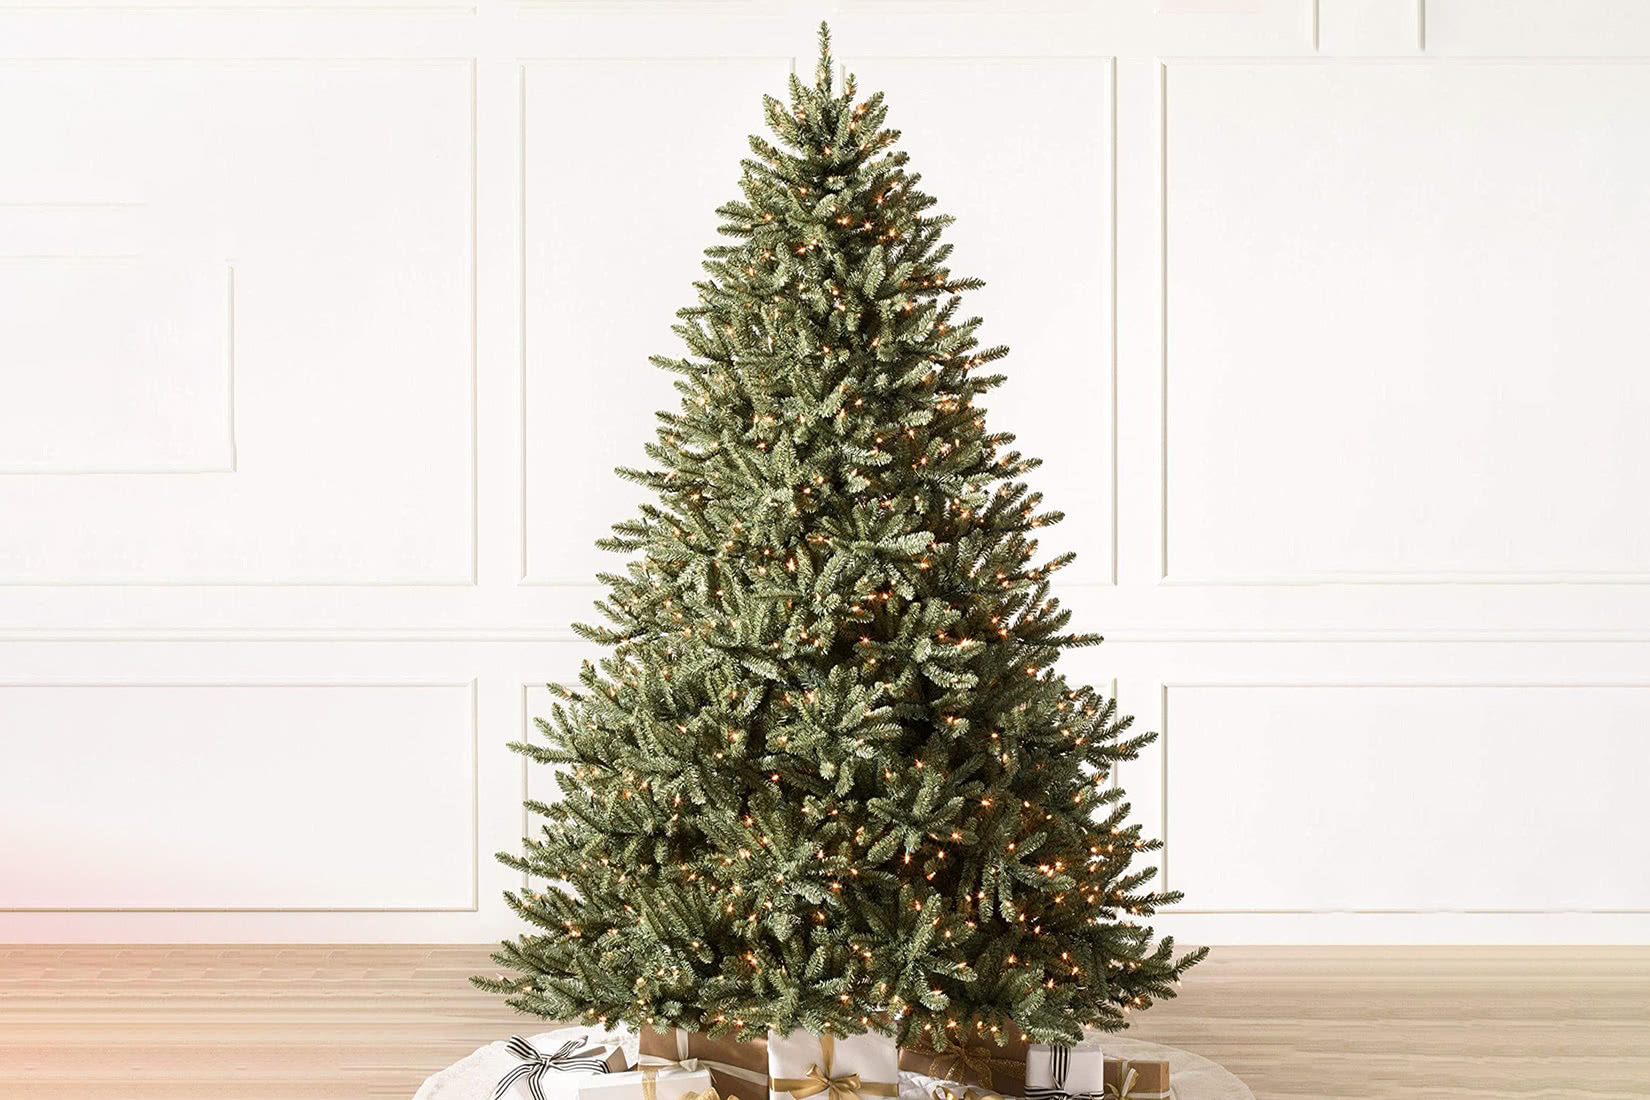 best artificial Christmas tree value balsam hill 4.5 review - Luxe Digital